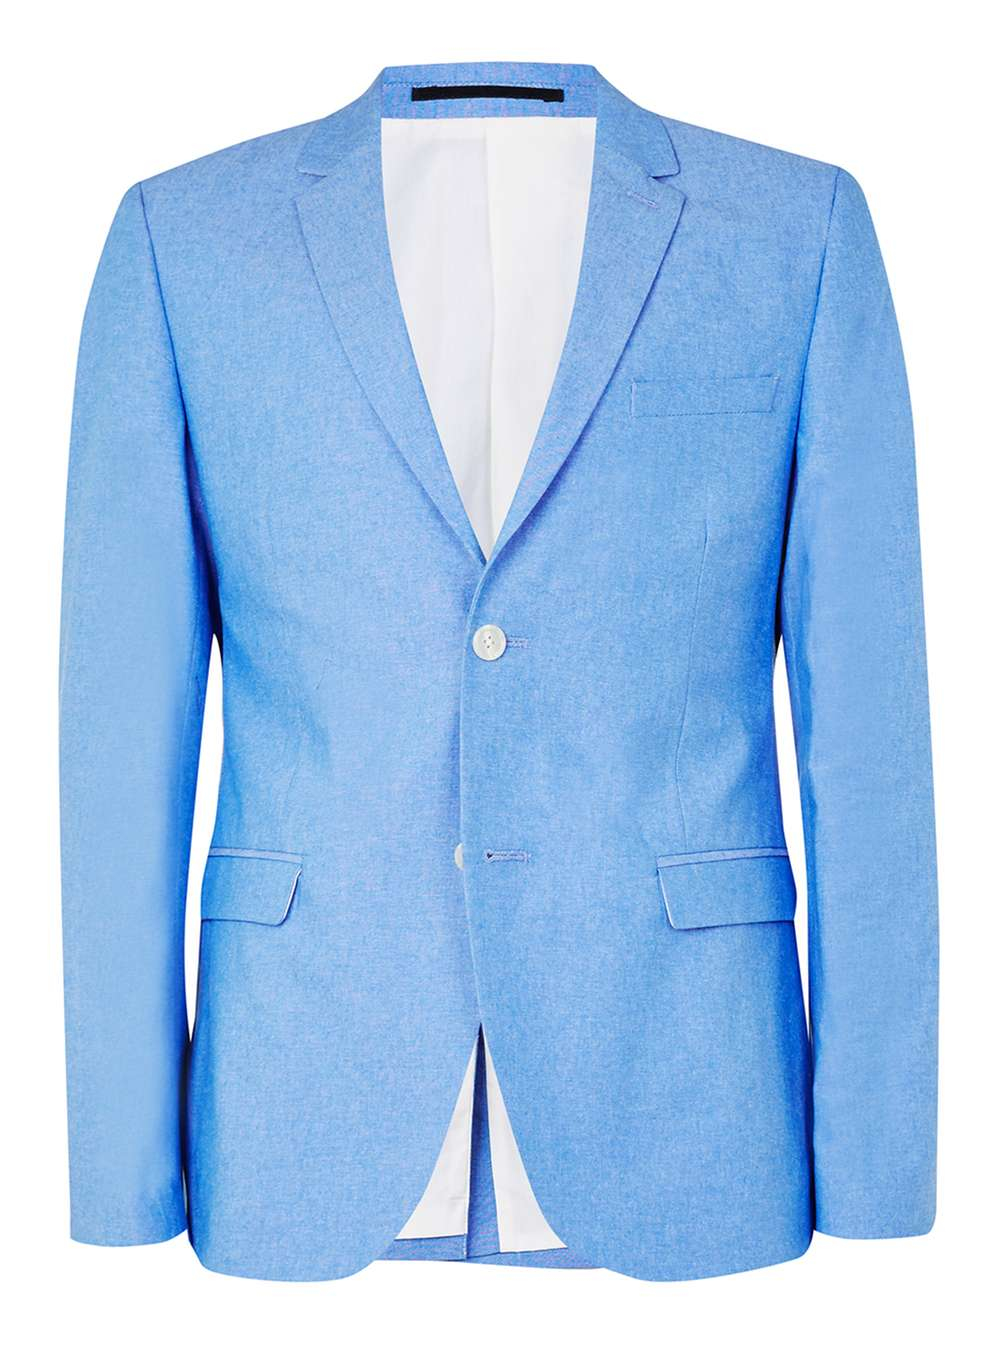 Shop the latest collection of mens bright bright blue blazer mens blue blazer from the most popular stores all in one place. Enjoy free fast shipping to Australia New Zealand. Yellow and Gold Suits Online There are many first-rate black, navy blue, white, khaki and gray suits out there.